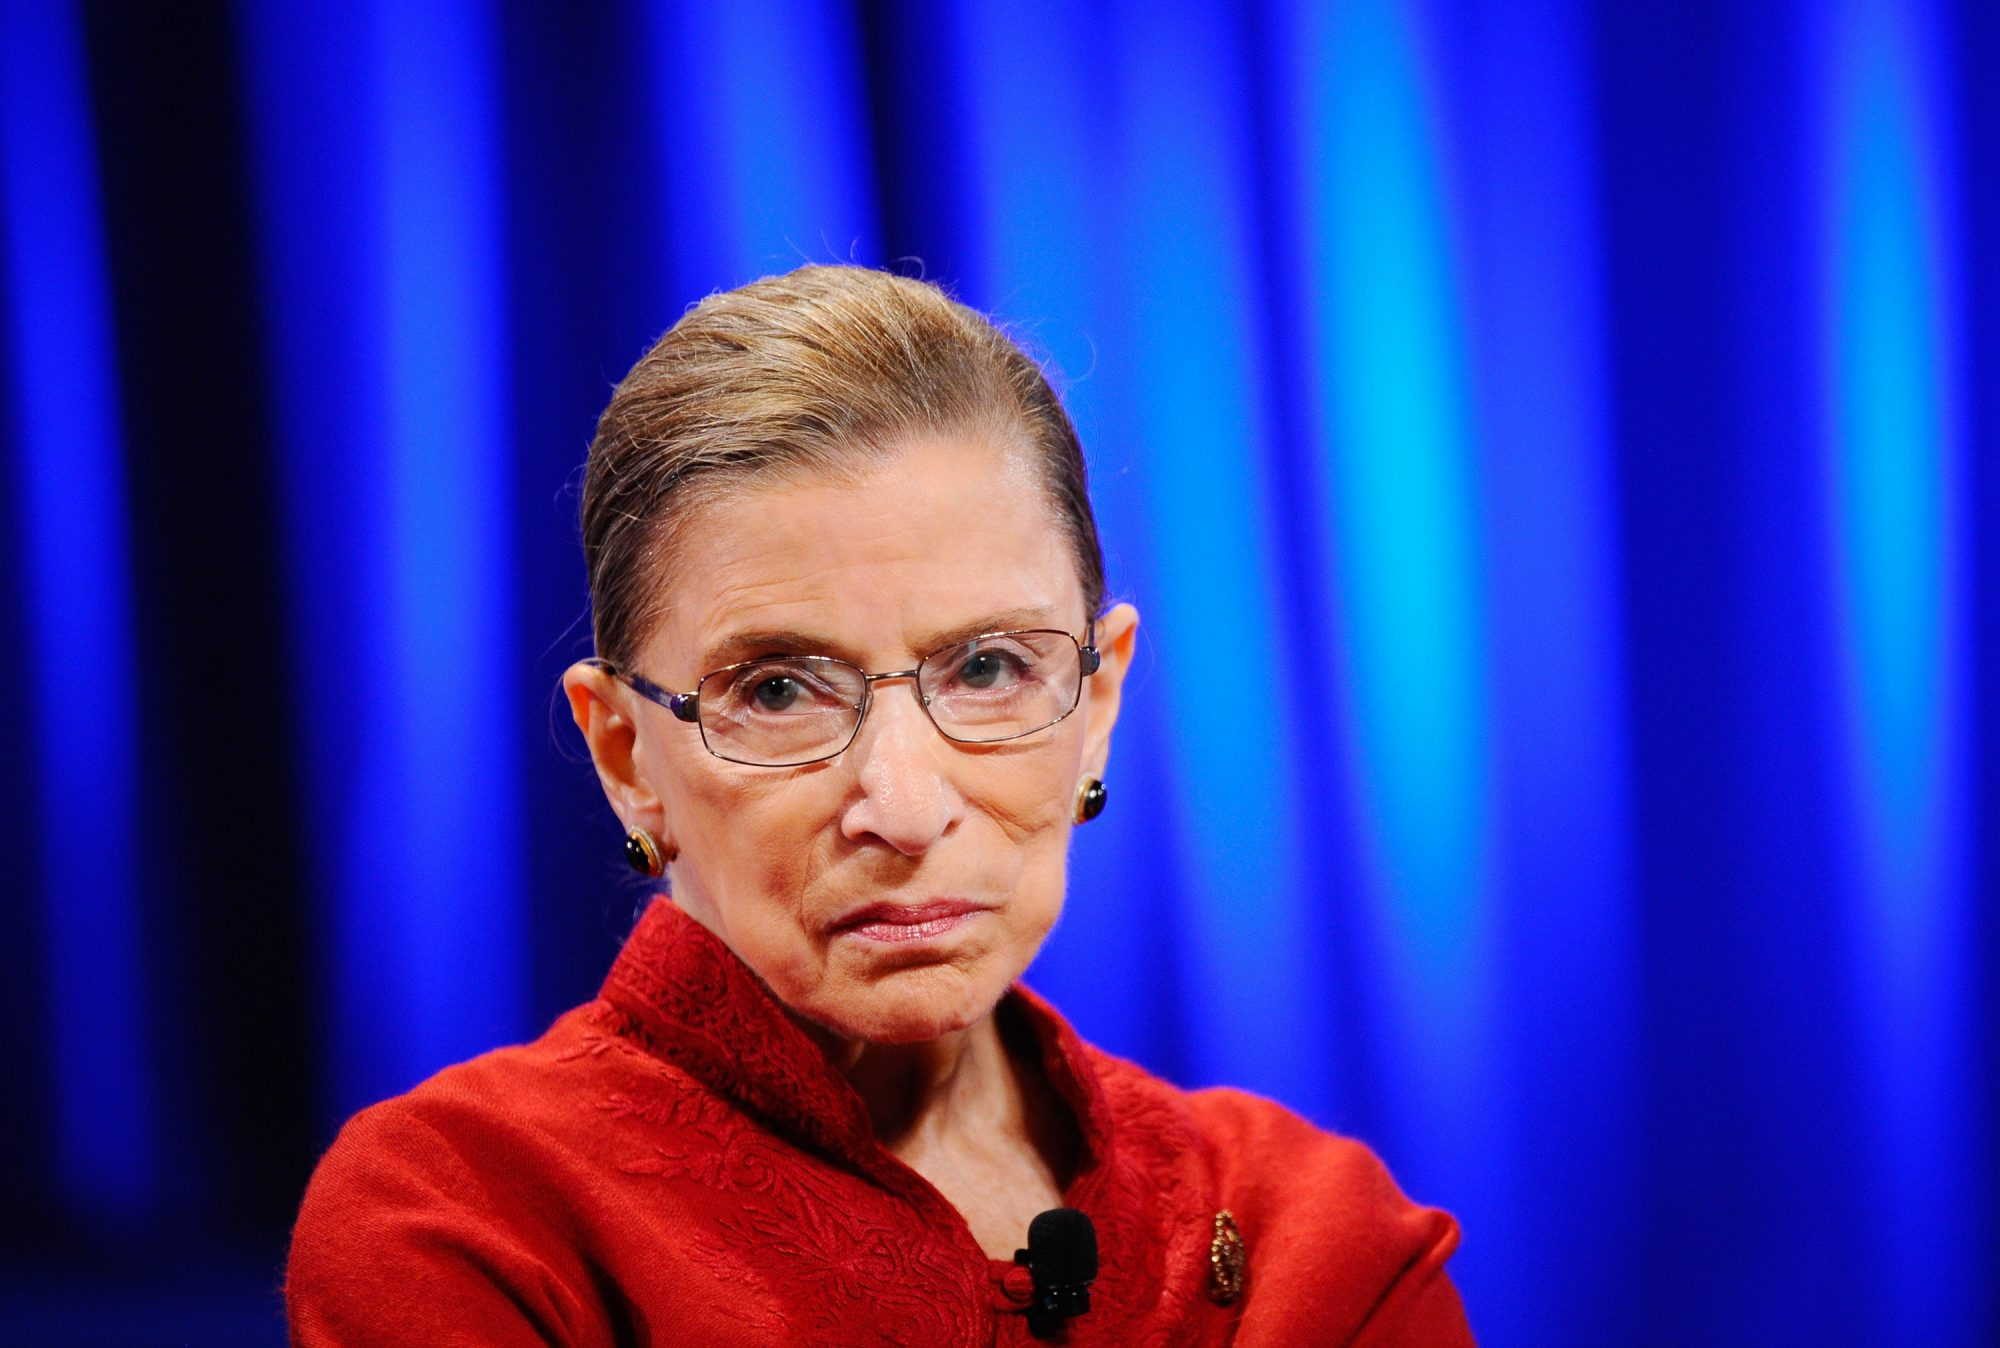 Ruth Bader Ginsburg Was Just Treated for A Malignant Tumor on Her Pancreas, Says Supreme Court